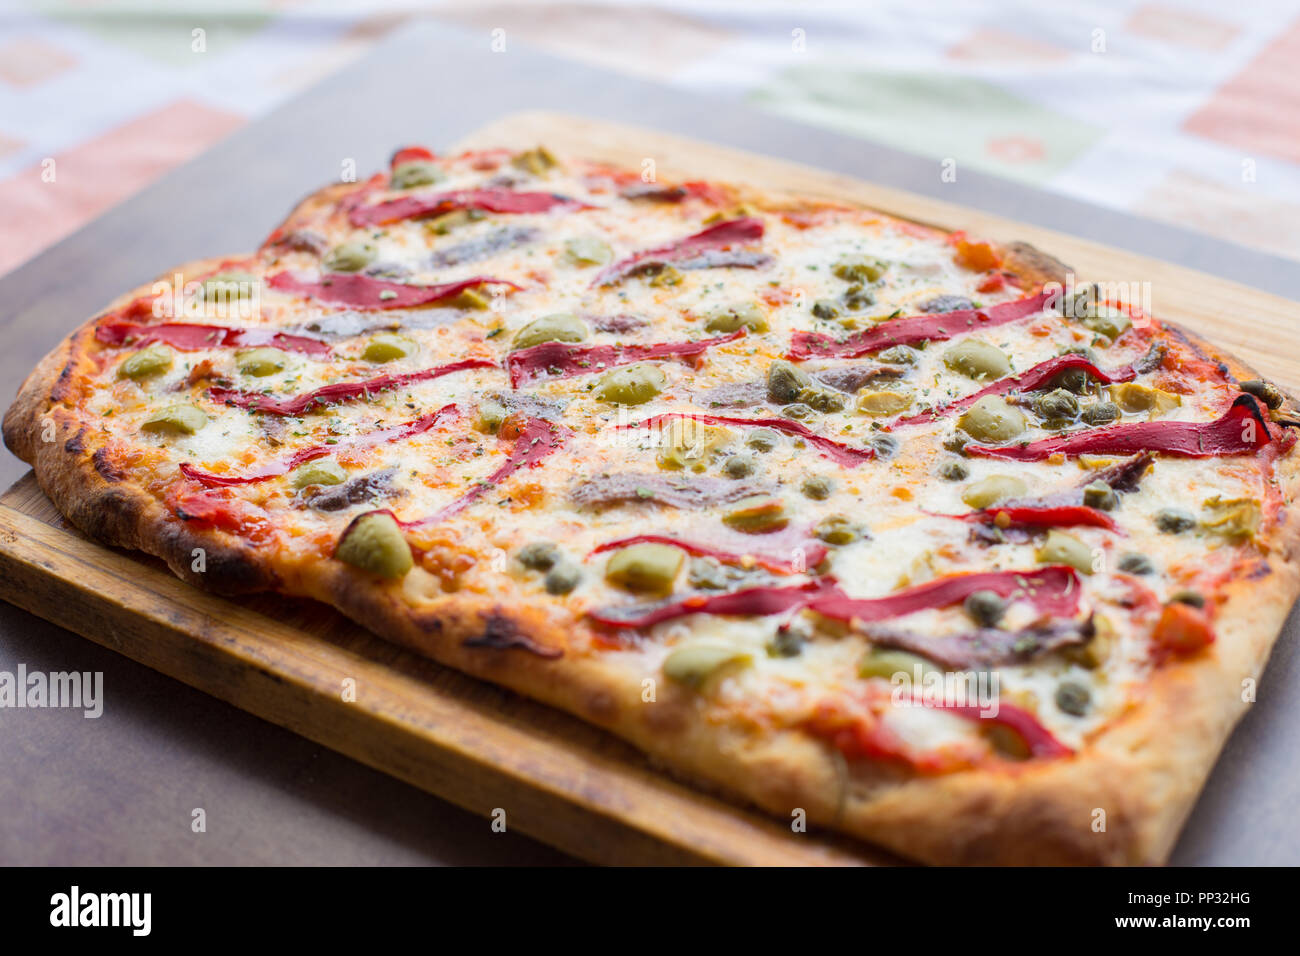 Homemade Italian pizza with anchovies, olives and capsicum. - Stock Image